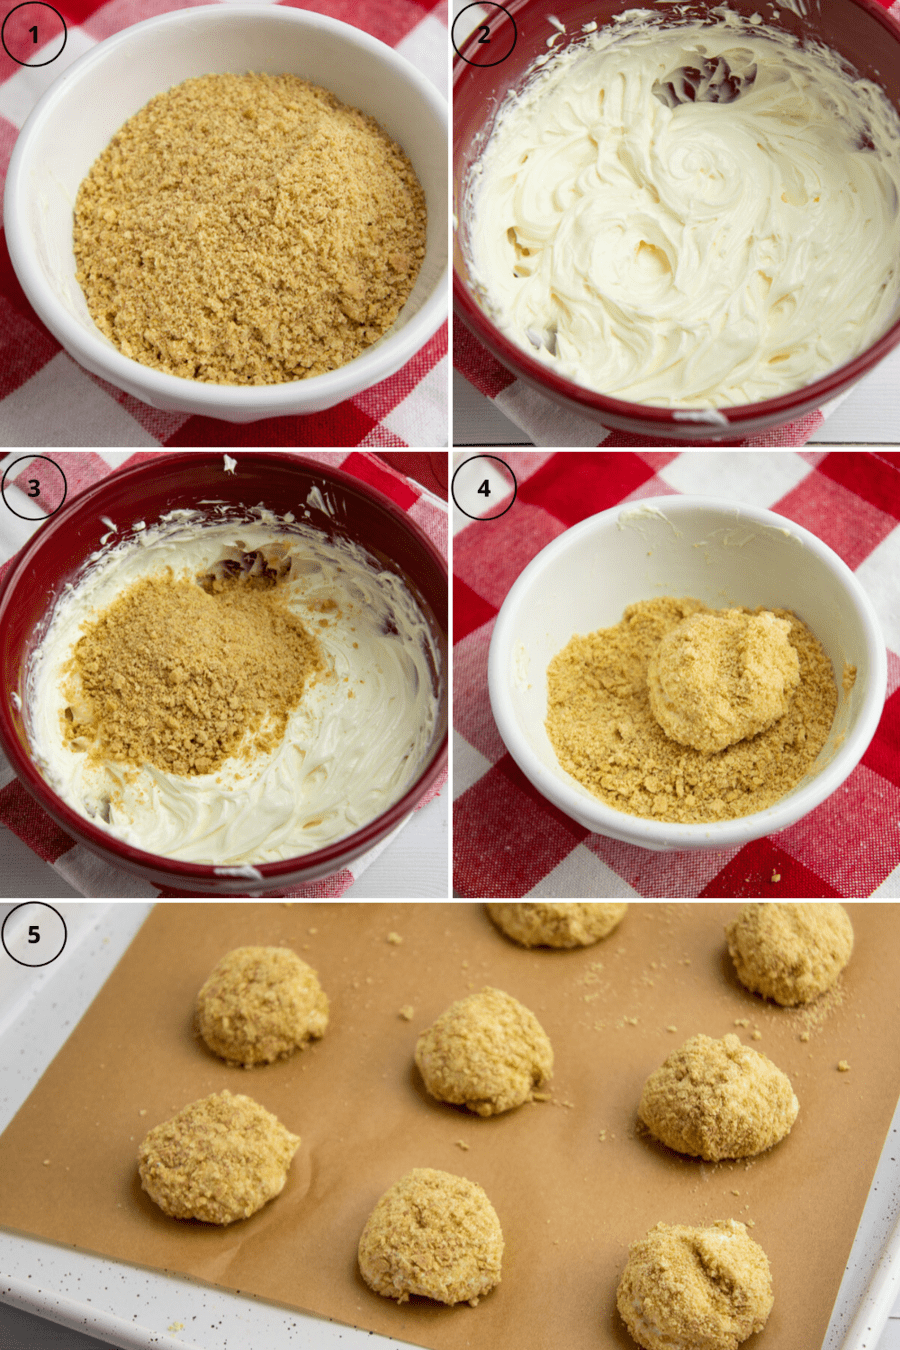 cream cheese and milk being mixed with sugar and graham cracker crumbs and formed into cheesecake bites